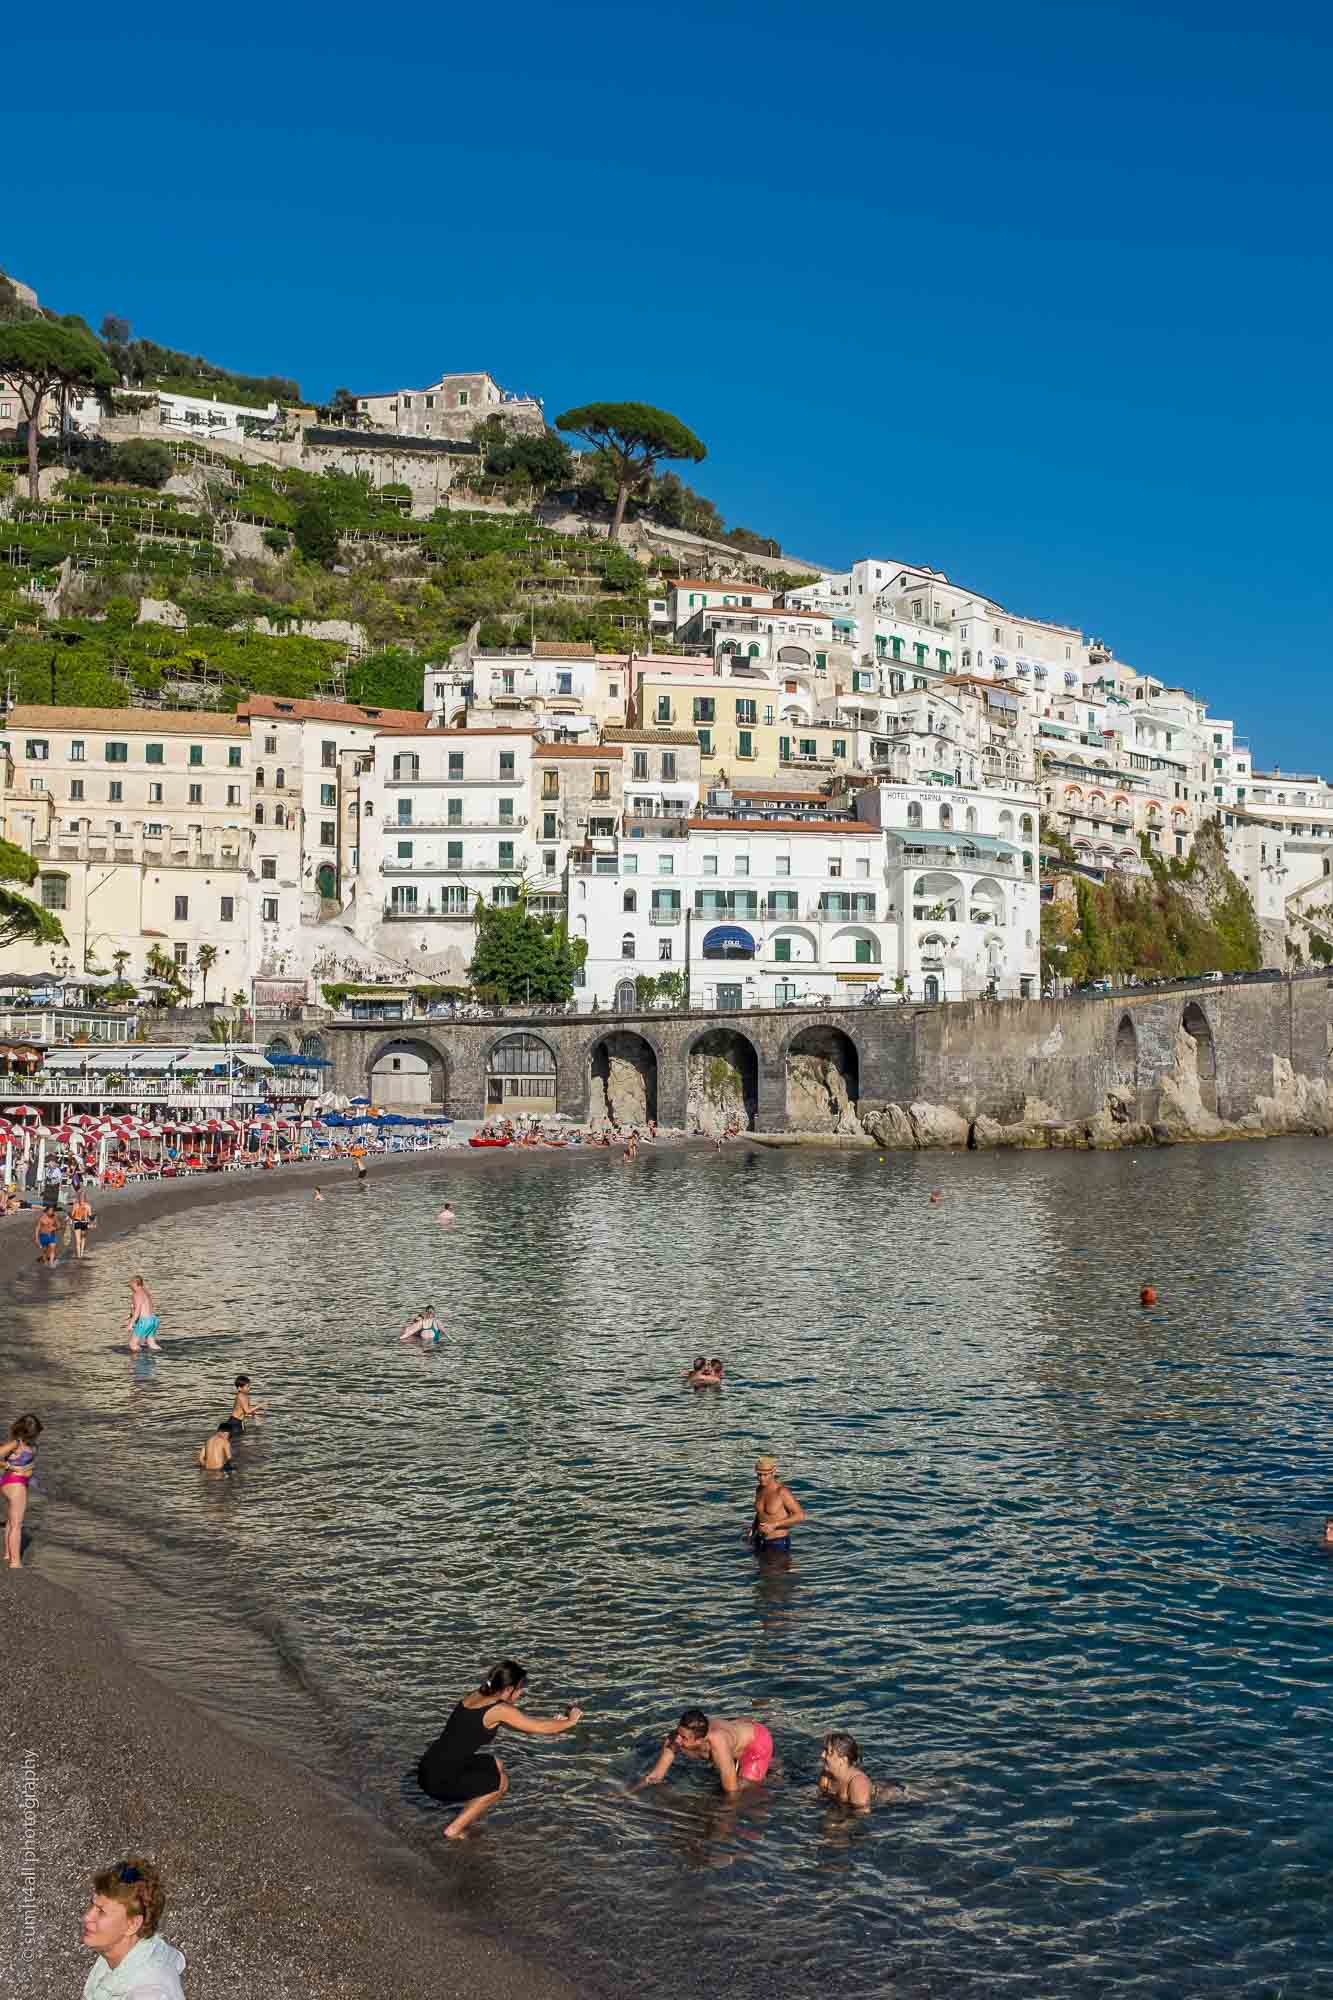 People Enjoying by the Coast in Amalfi, Italy